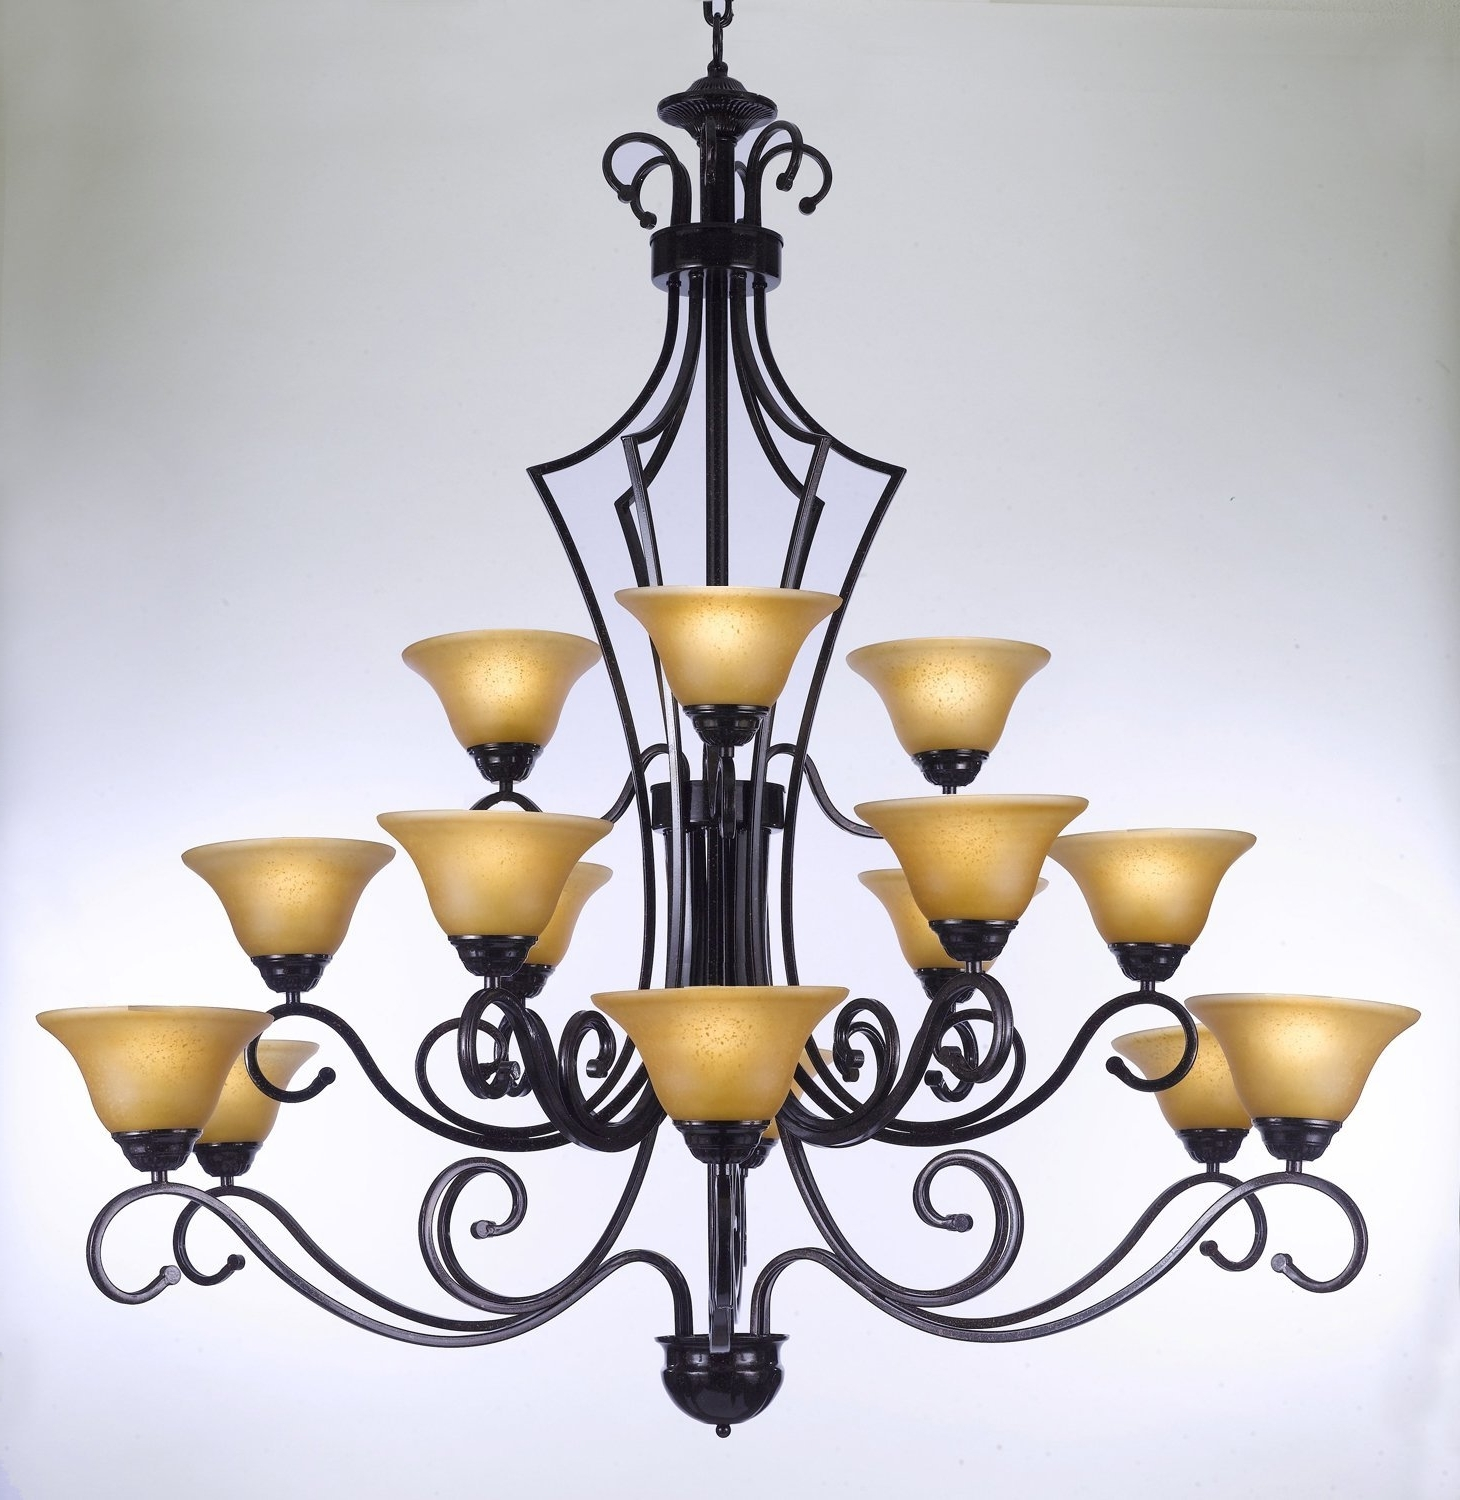 """Current Modern Wrought Iron Chandeliers With Regard To Large Foyer Or Entryway Wrought Iron Chandelier H51"""" X W (View 2 of 15)"""